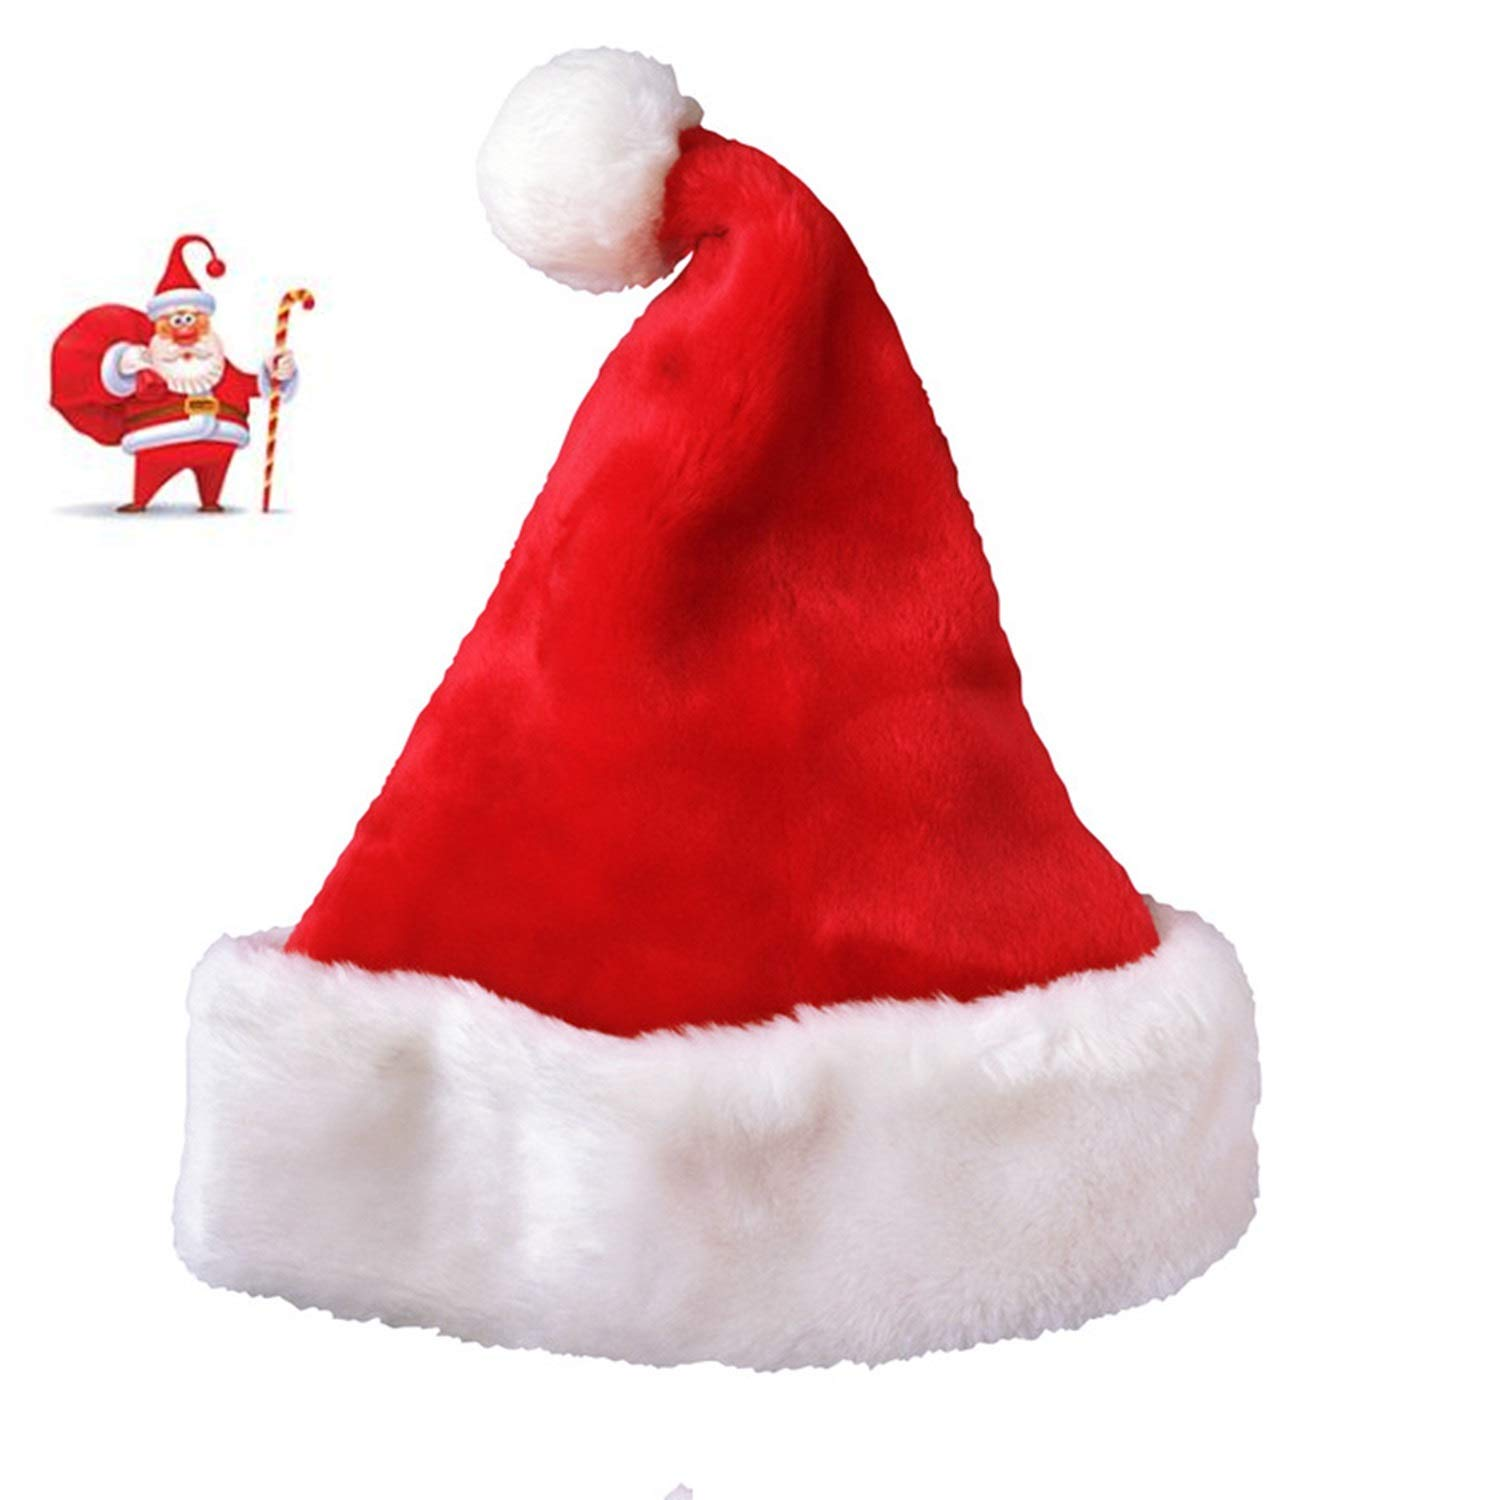 AOFITEE Deluxe Red Santa Hat Plush Trim Christmas Costume Accessory 1207-AF-113026-1 Pack